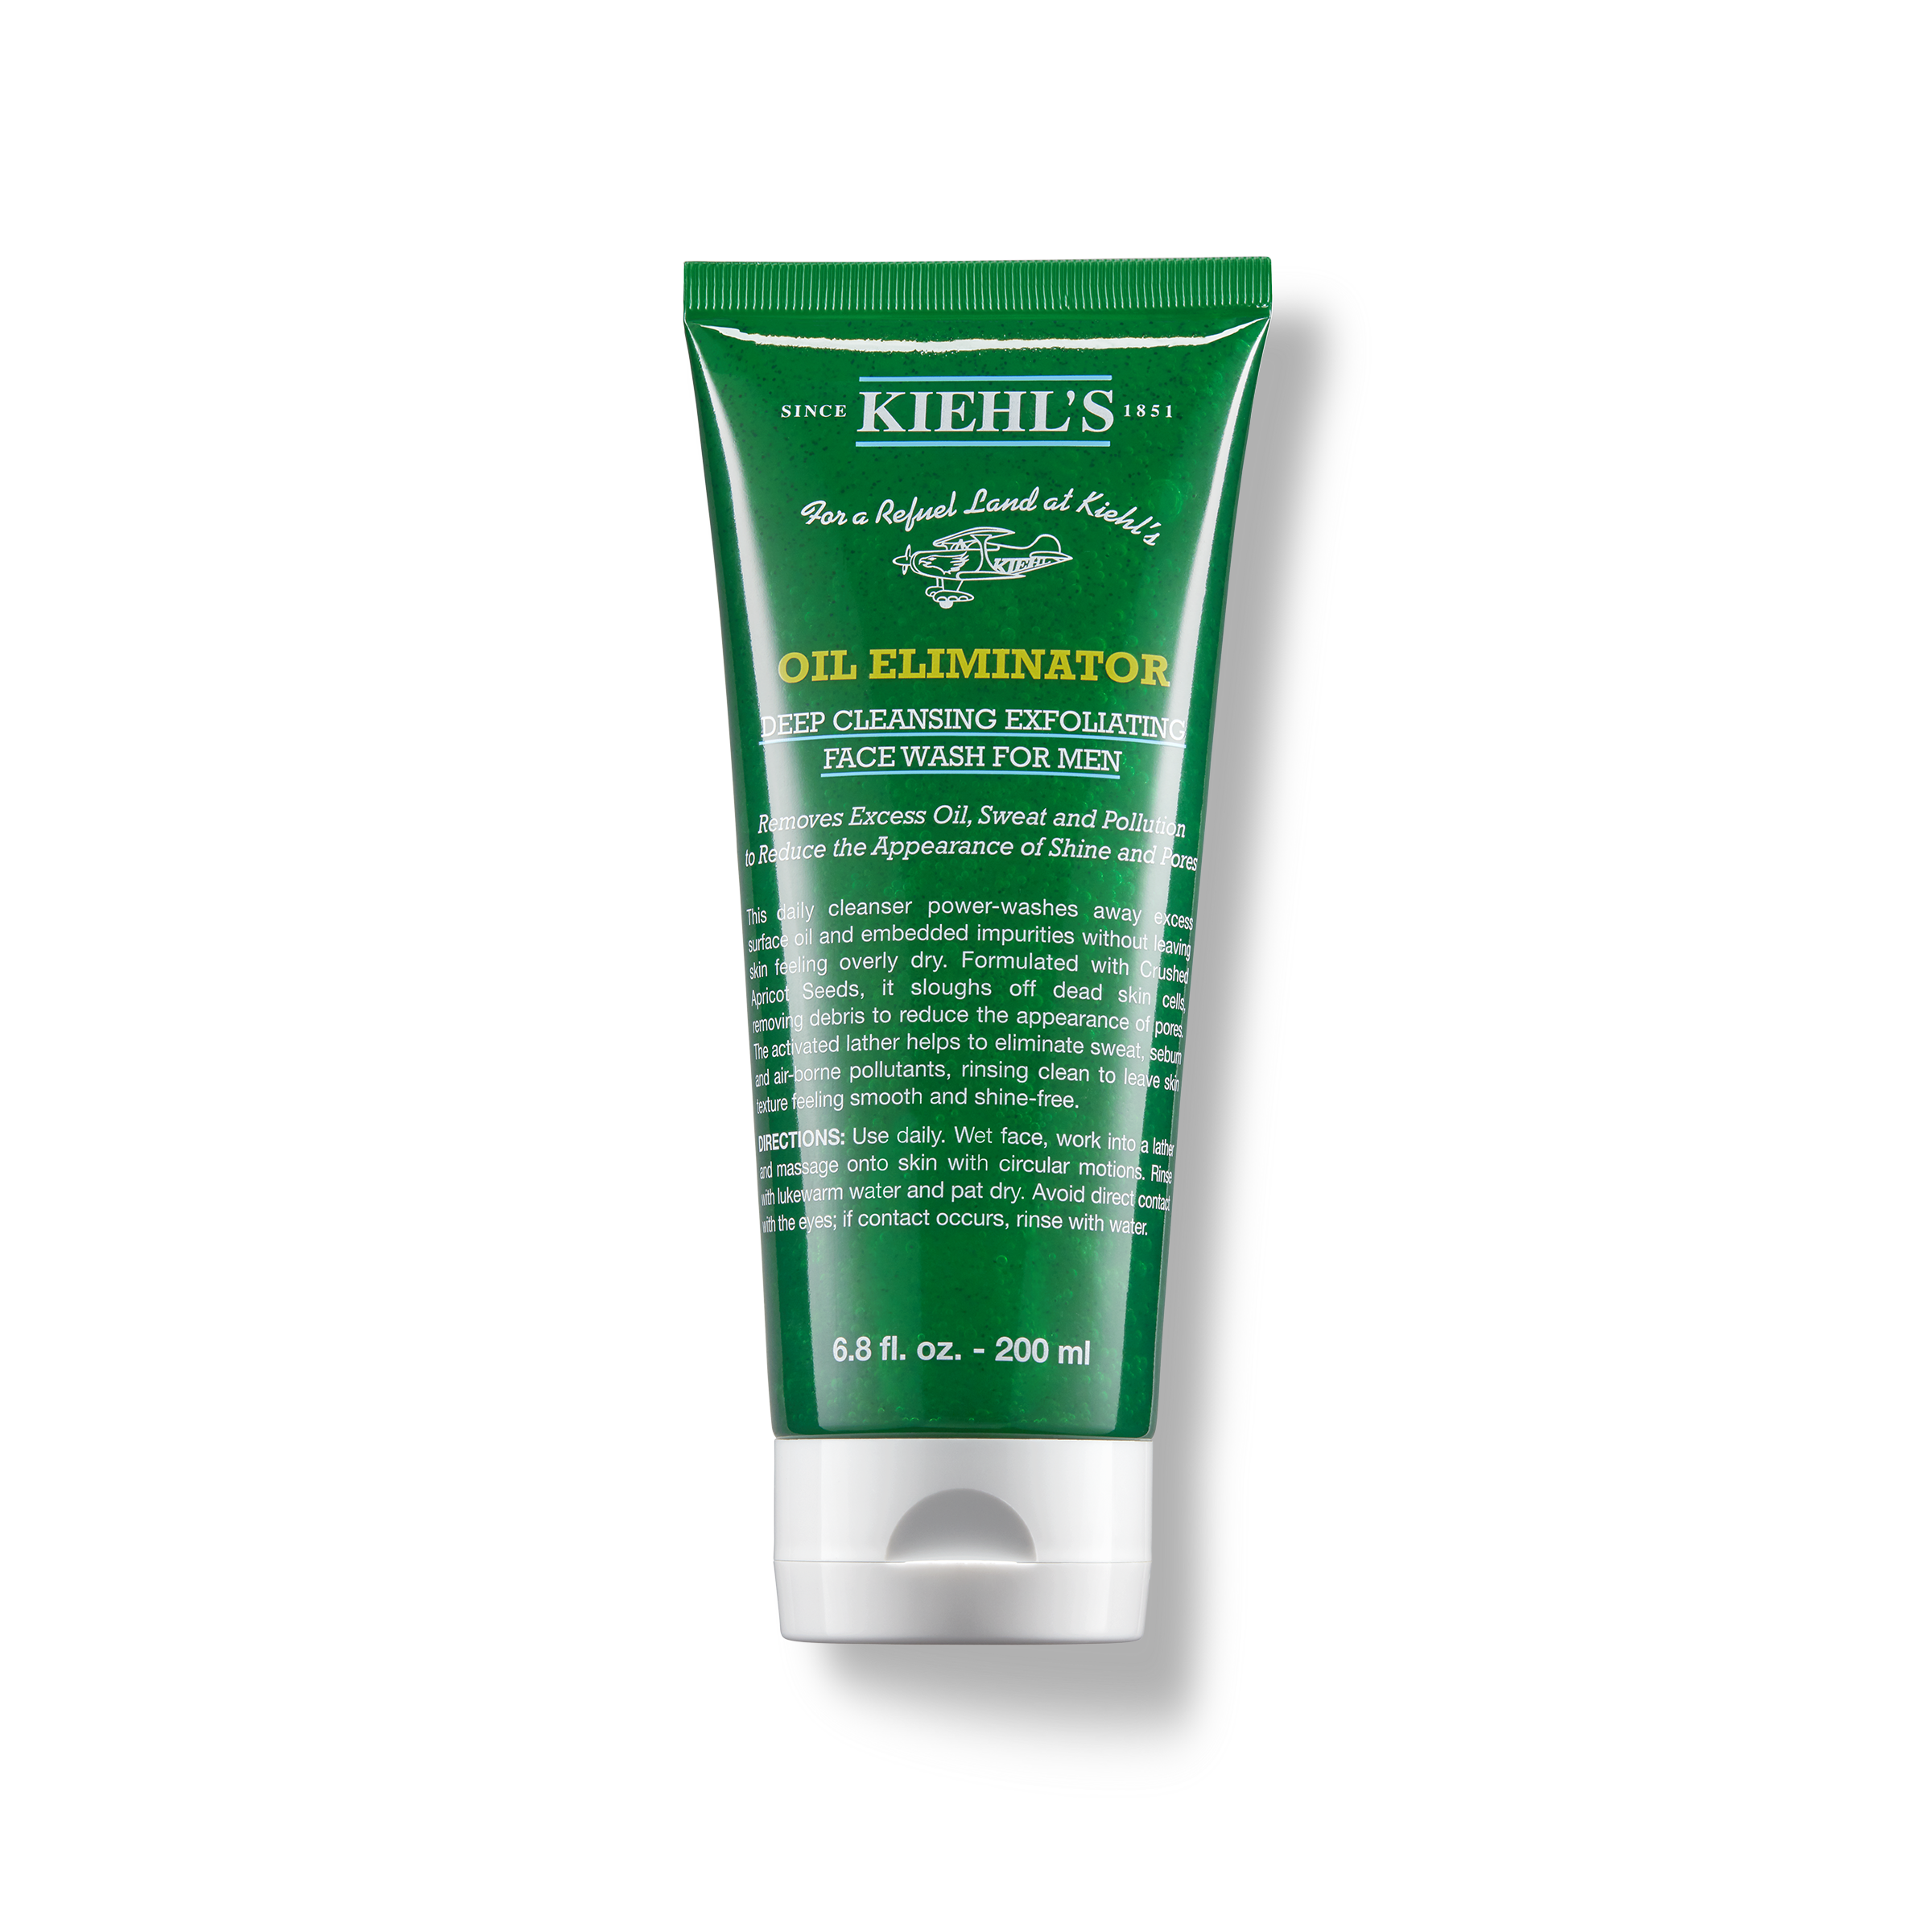 Oil Eliminator Deep Cleansing Exfoliating Face Wash Kiehl S